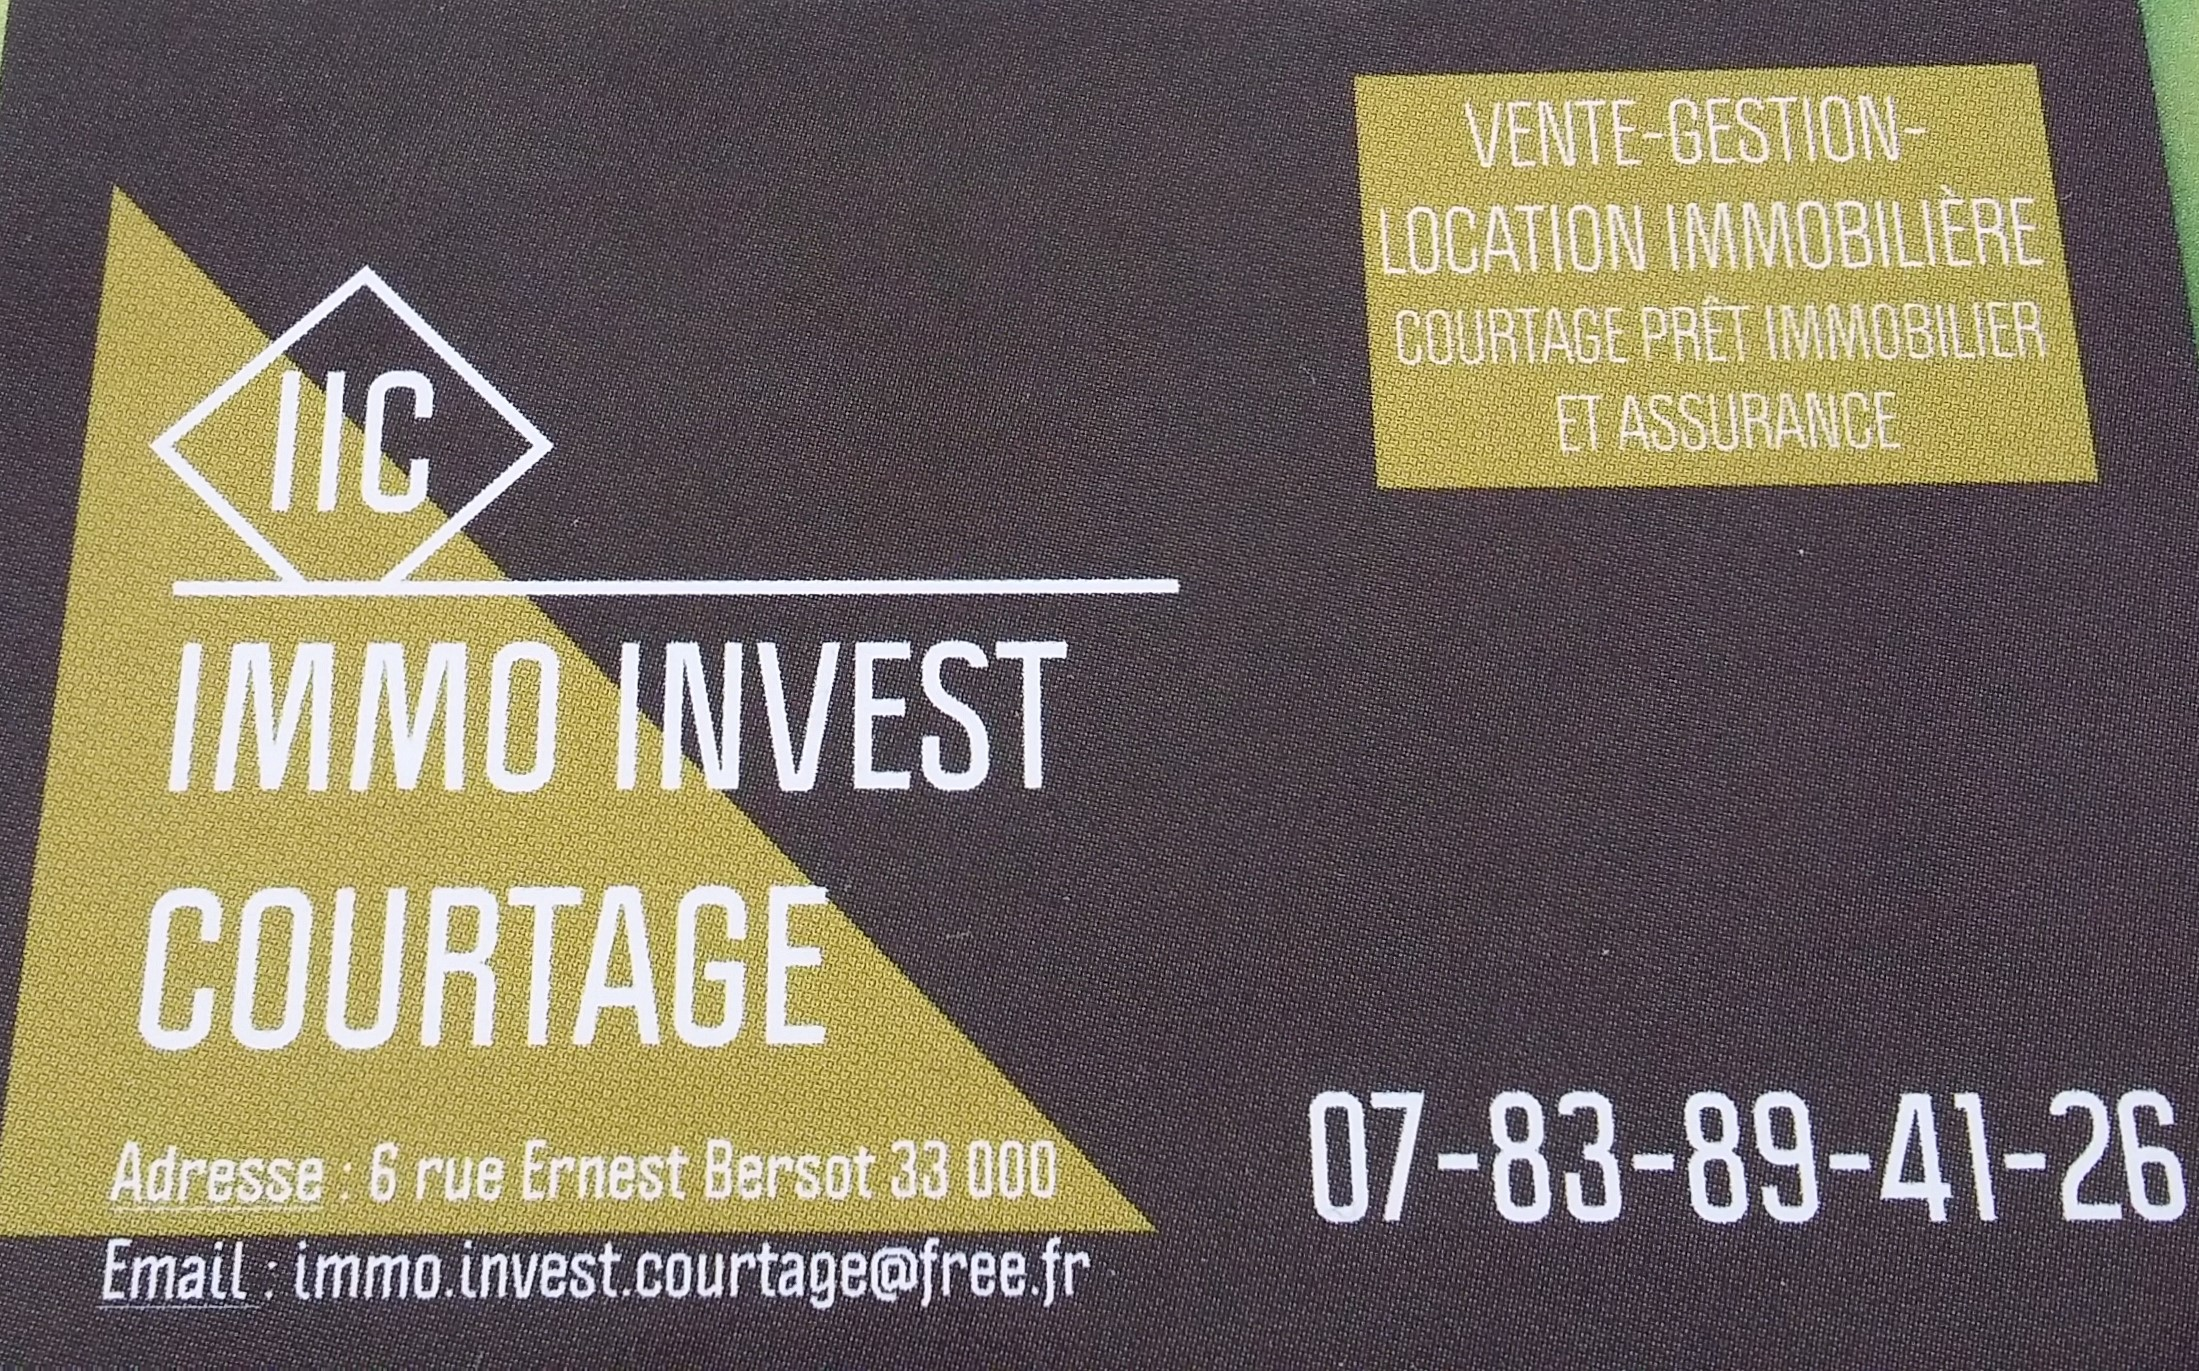 IMMO INVEST COURTAGE